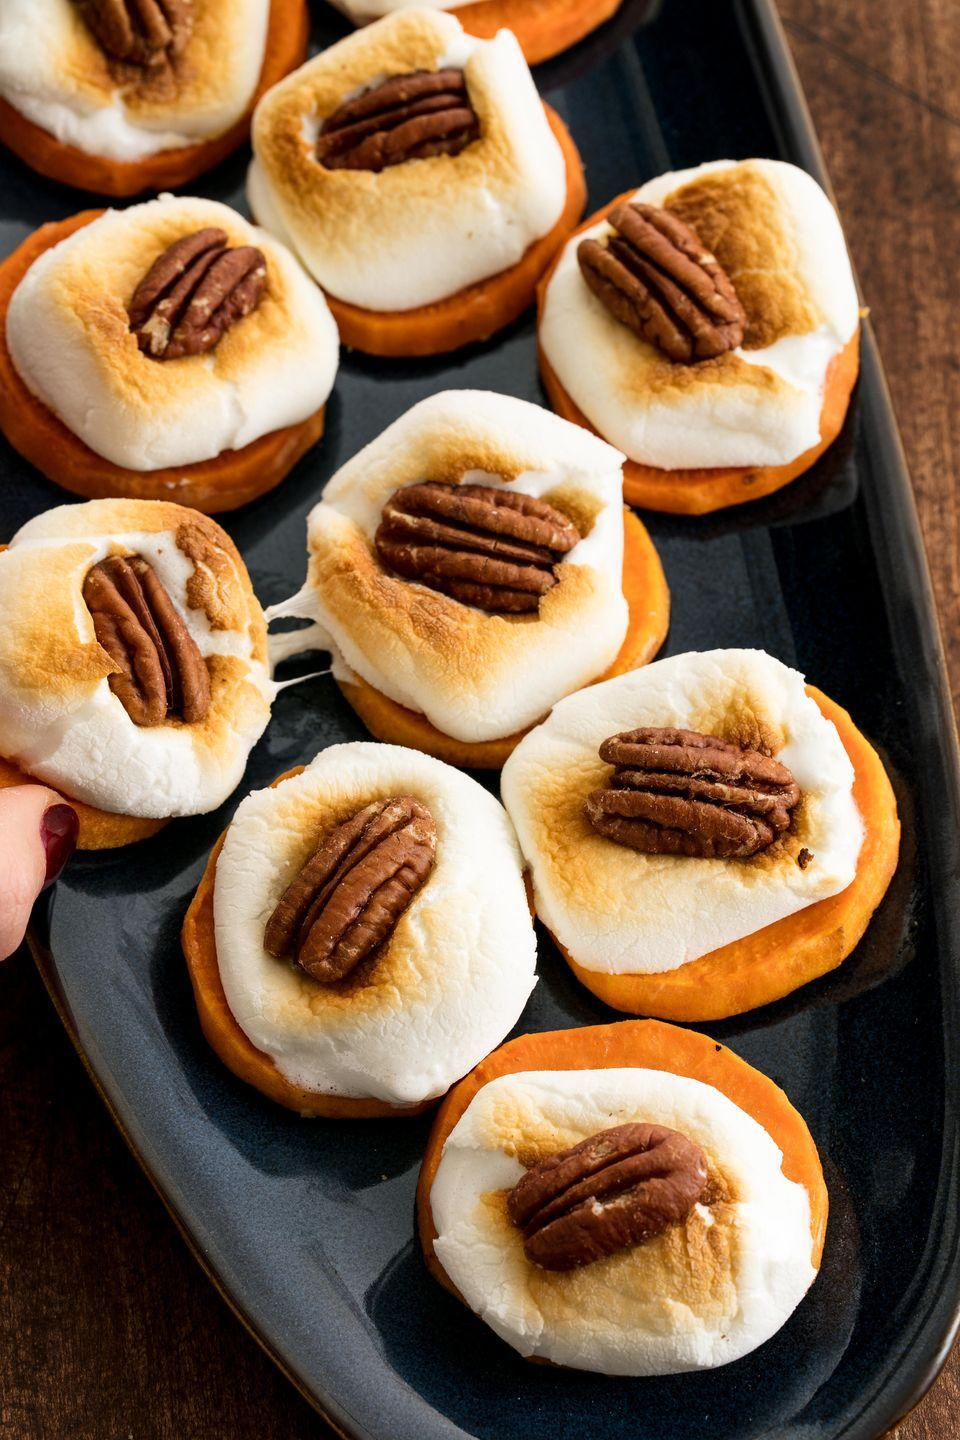 "<p>Just a little something sweet.</p><p>Get the recipe from <a href=""https://www.delish.com/cooking/recipe-ideas/recipes/a50000/sweet-potato-bites-recipe/"" rel=""nofollow noopener"" target=""_blank"" data-ylk=""slk:Delish"" class=""link rapid-noclick-resp"">Delish</a>.</p>"